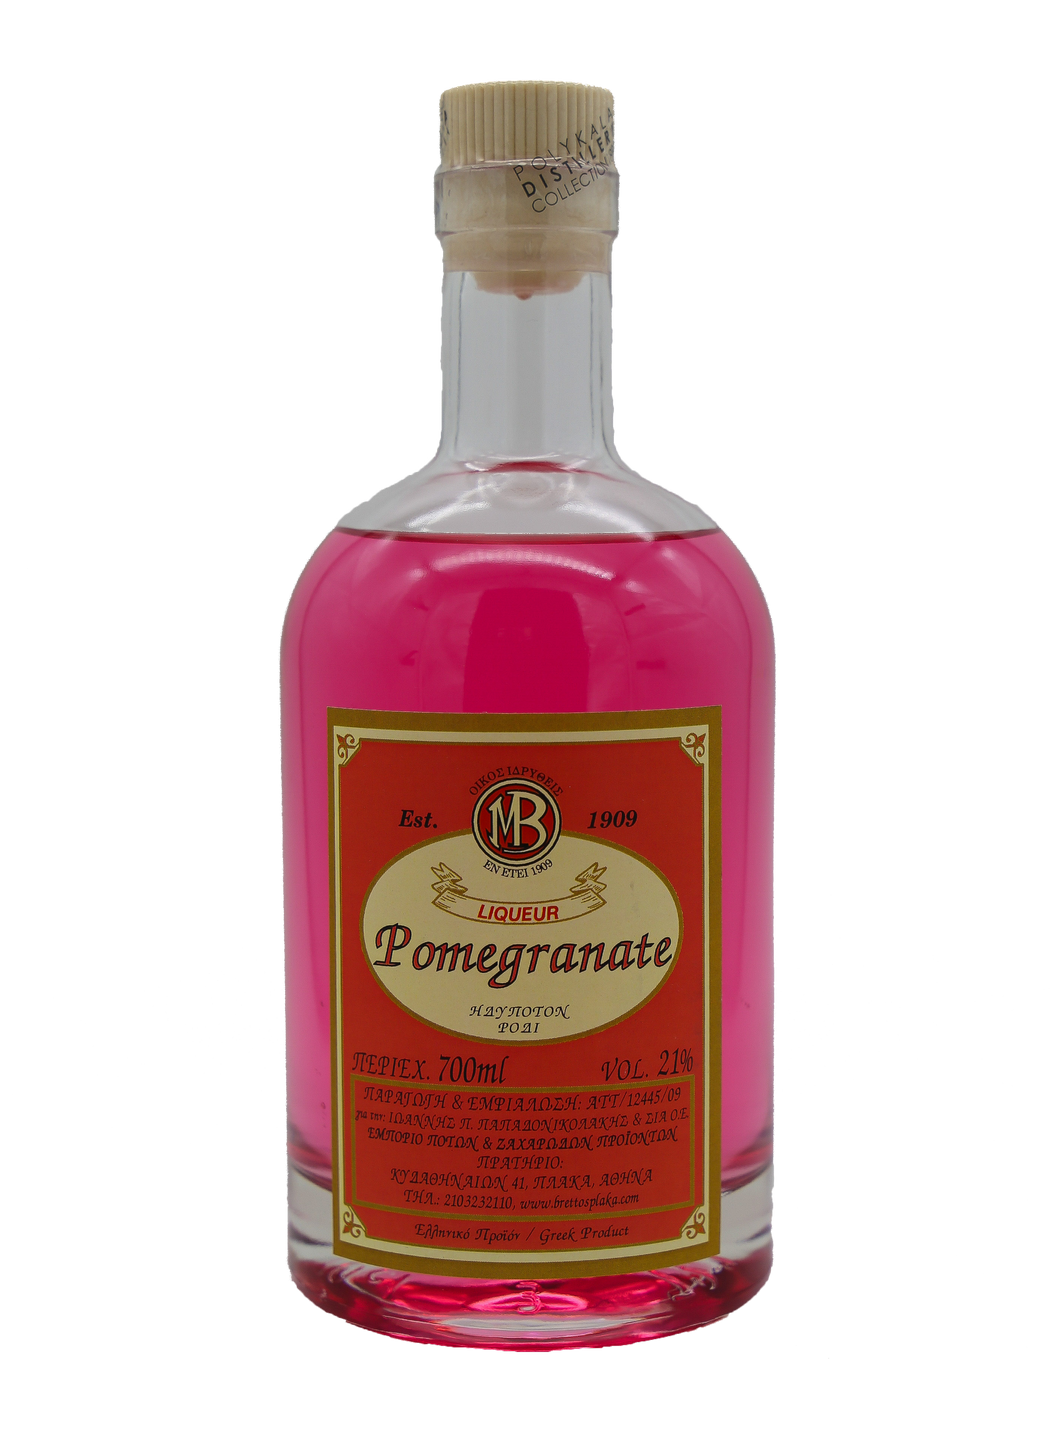 Pomegranate Liqueur 700ml